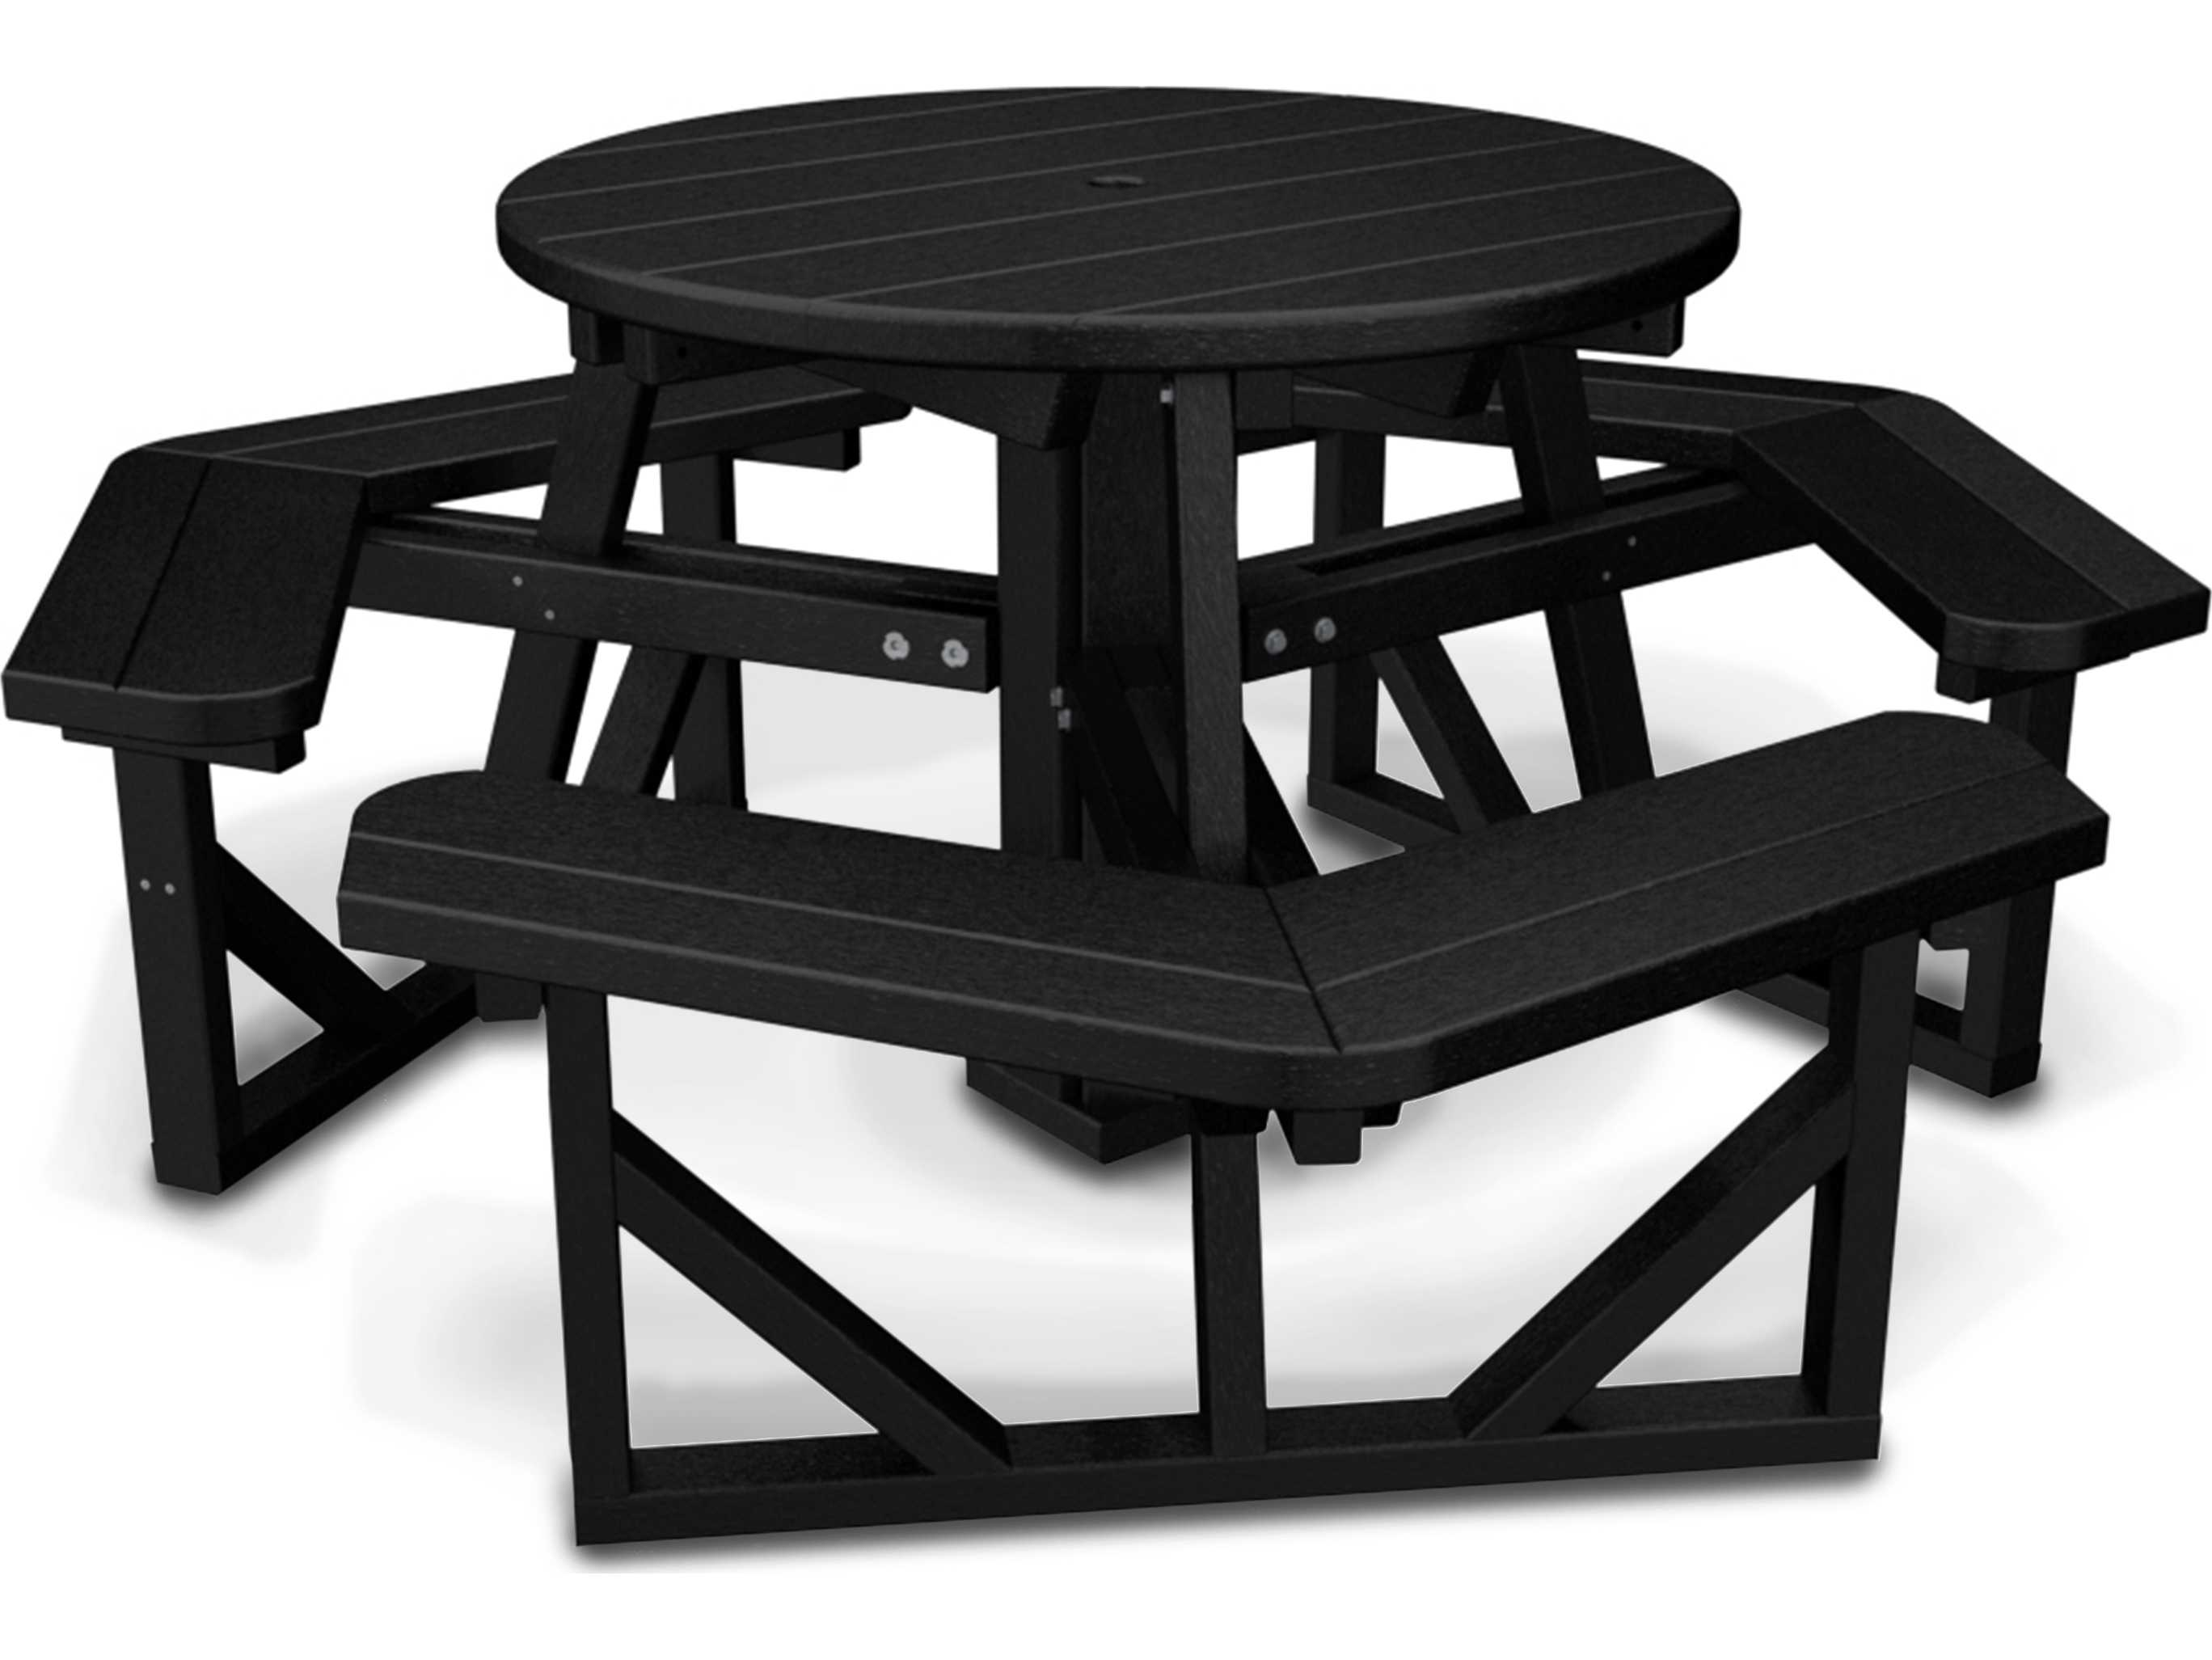 Polywoodr Park Recycled Plastic 36 Round Picnic Table Ph36